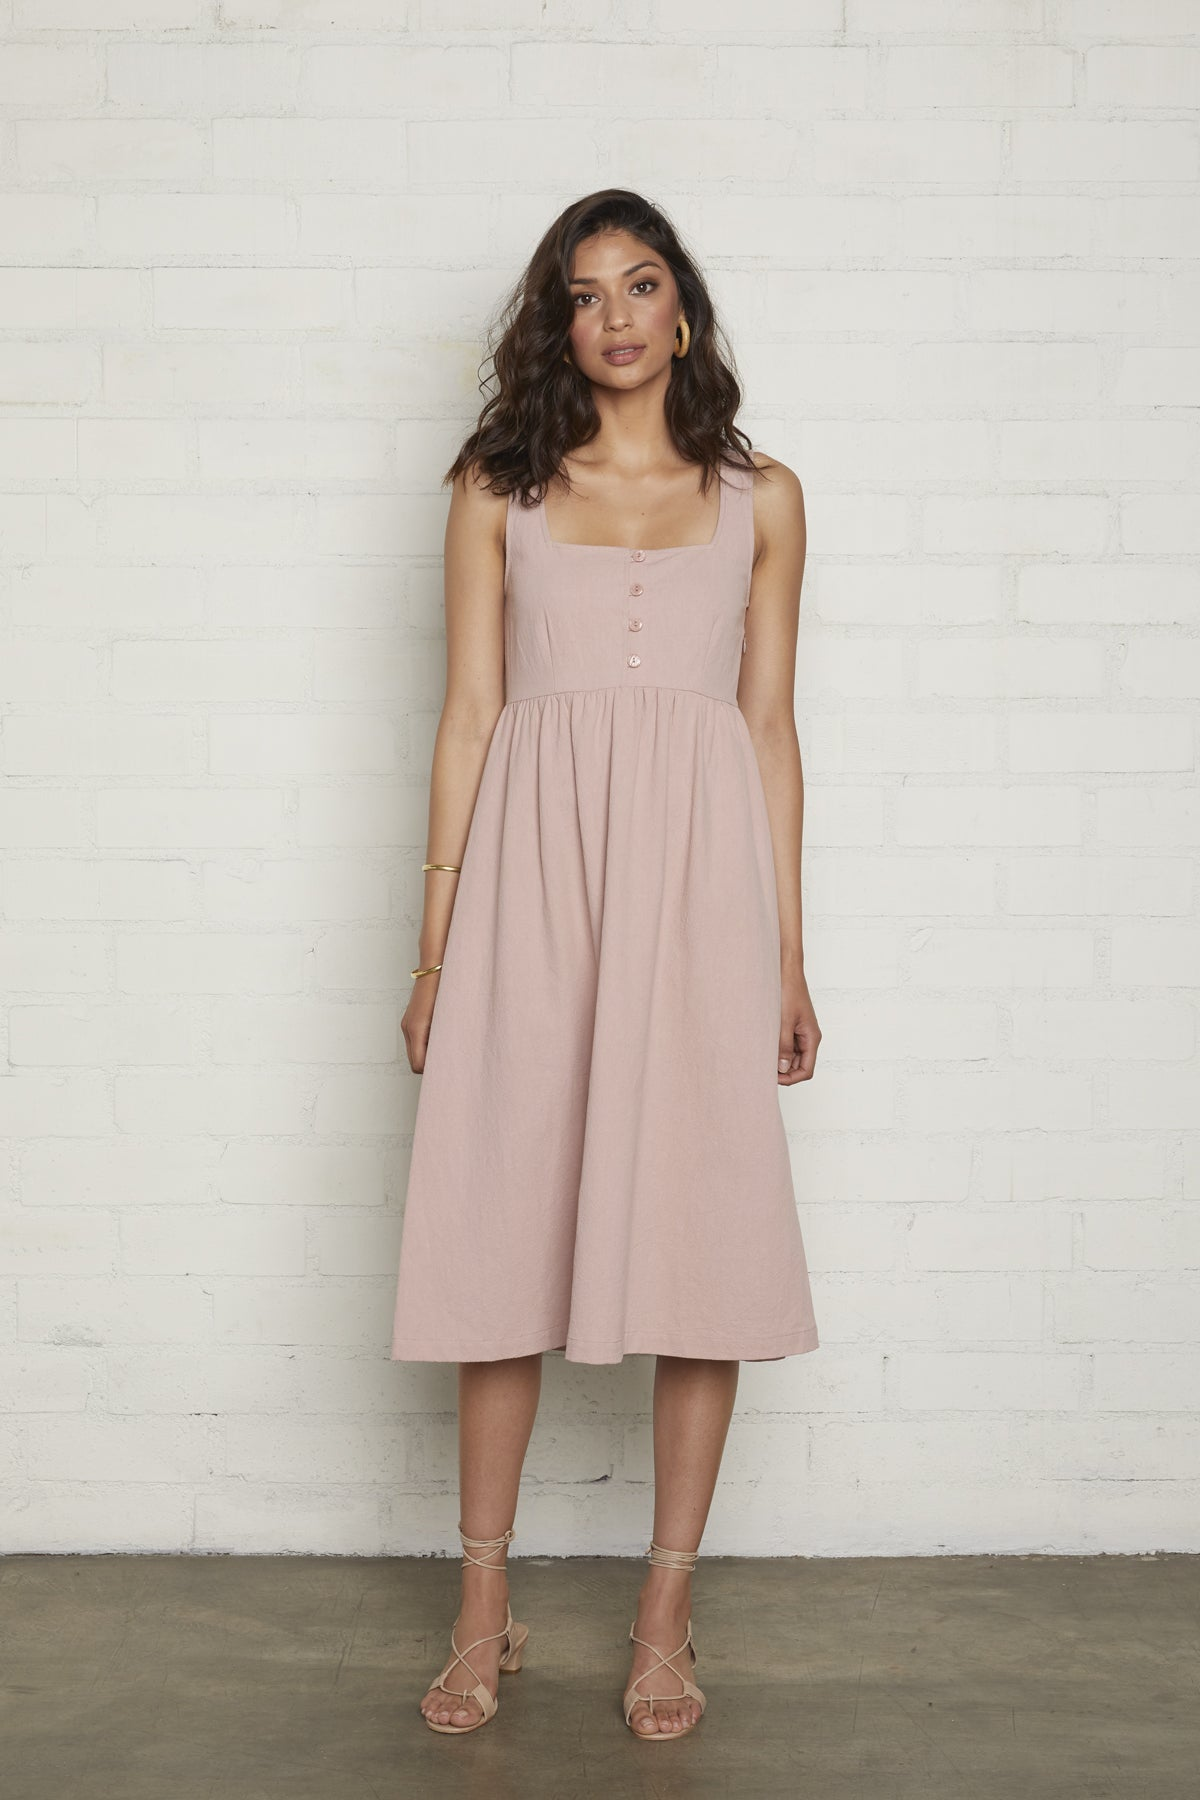 Linen Gianna Dress - Rose Quartz